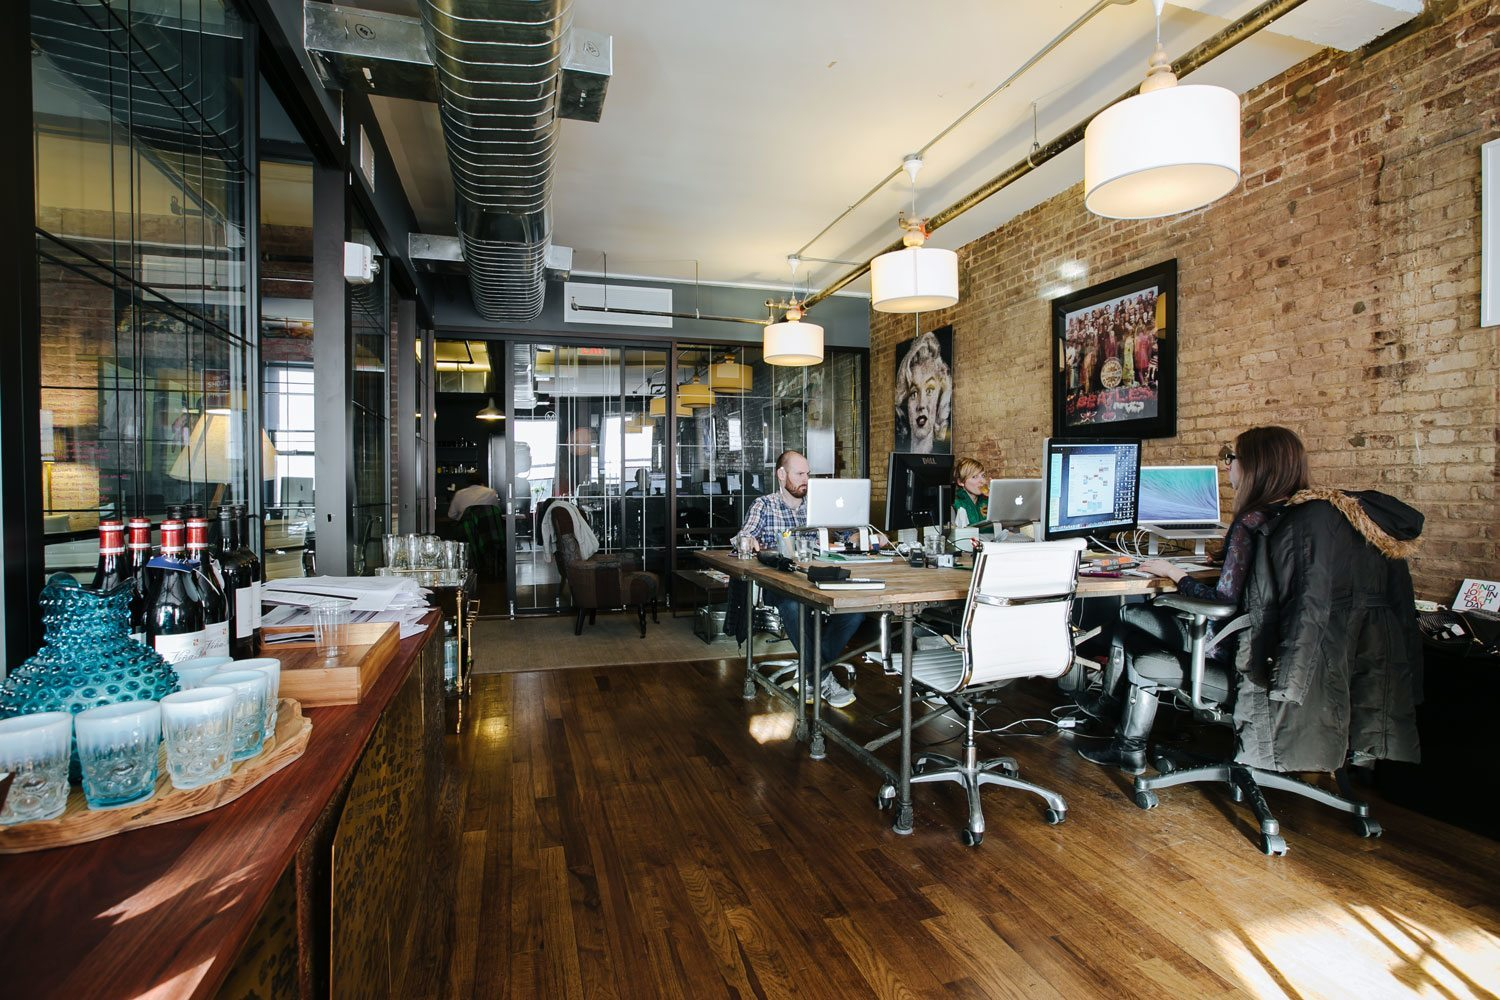 wework coworking new york s meatpacking district officelovin 39. Black Bedroom Furniture Sets. Home Design Ideas